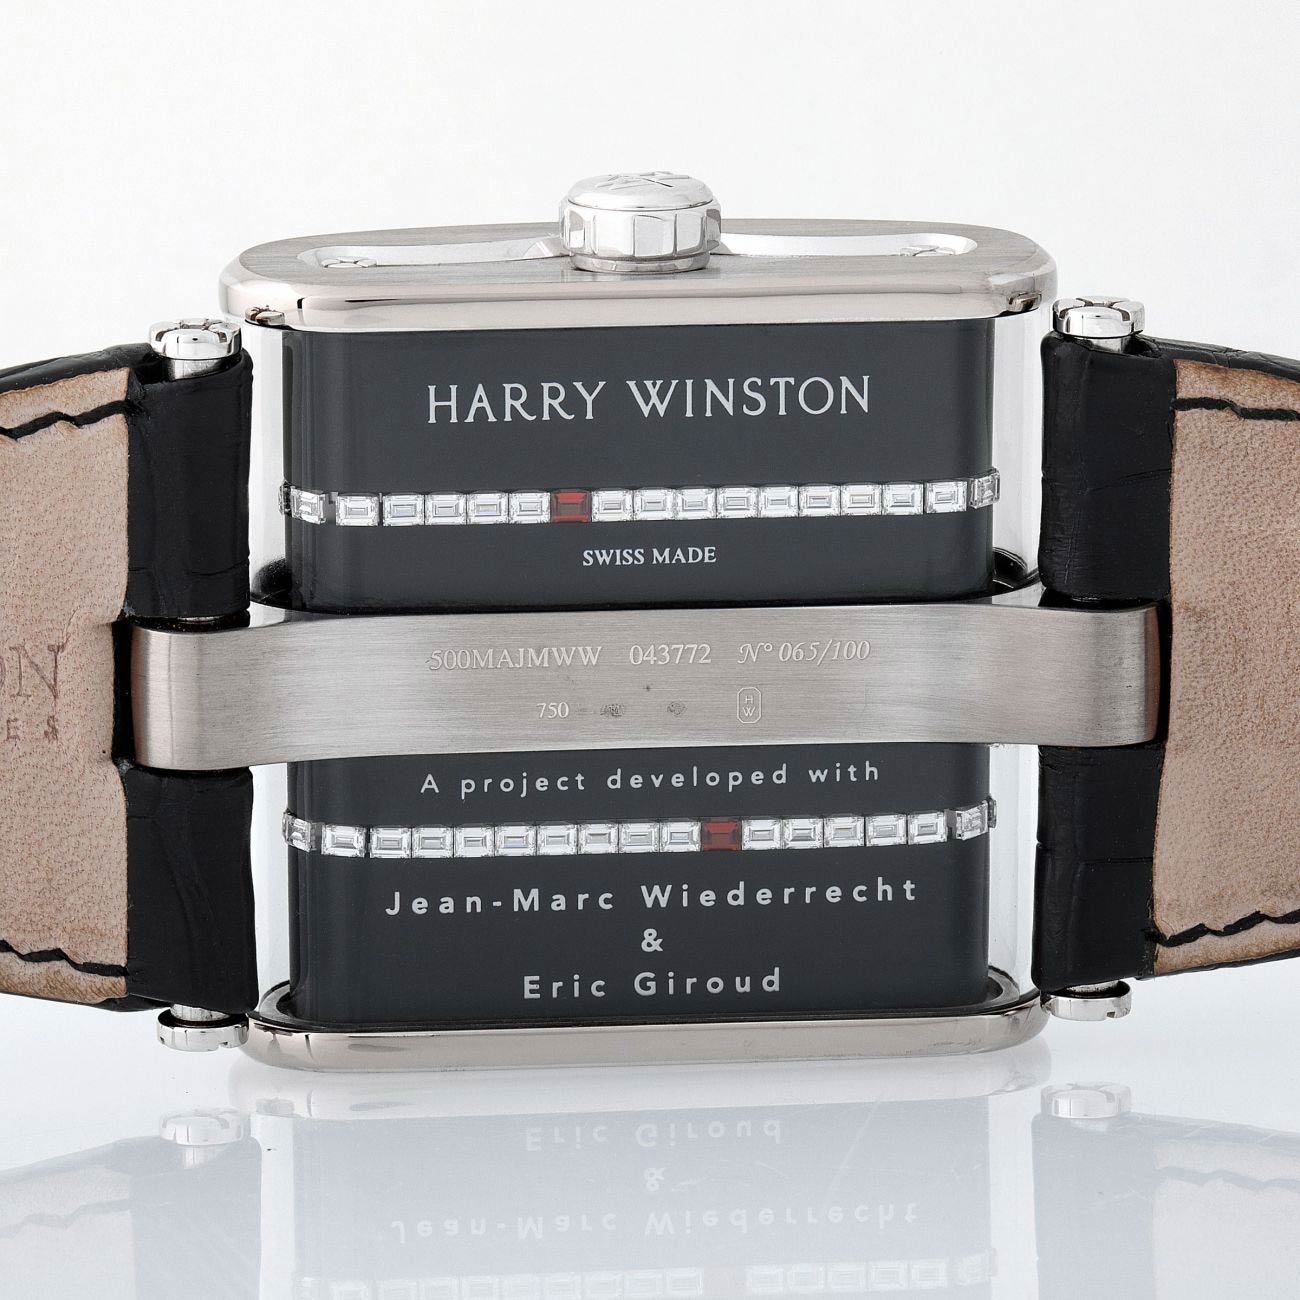 Lot 136 Harry Winston: Limited Edition and Massive Opus 9 Automatic Wristwatch in White Gold, Ref. Opuahm56ww001, with Black Diamonds-Set Dial